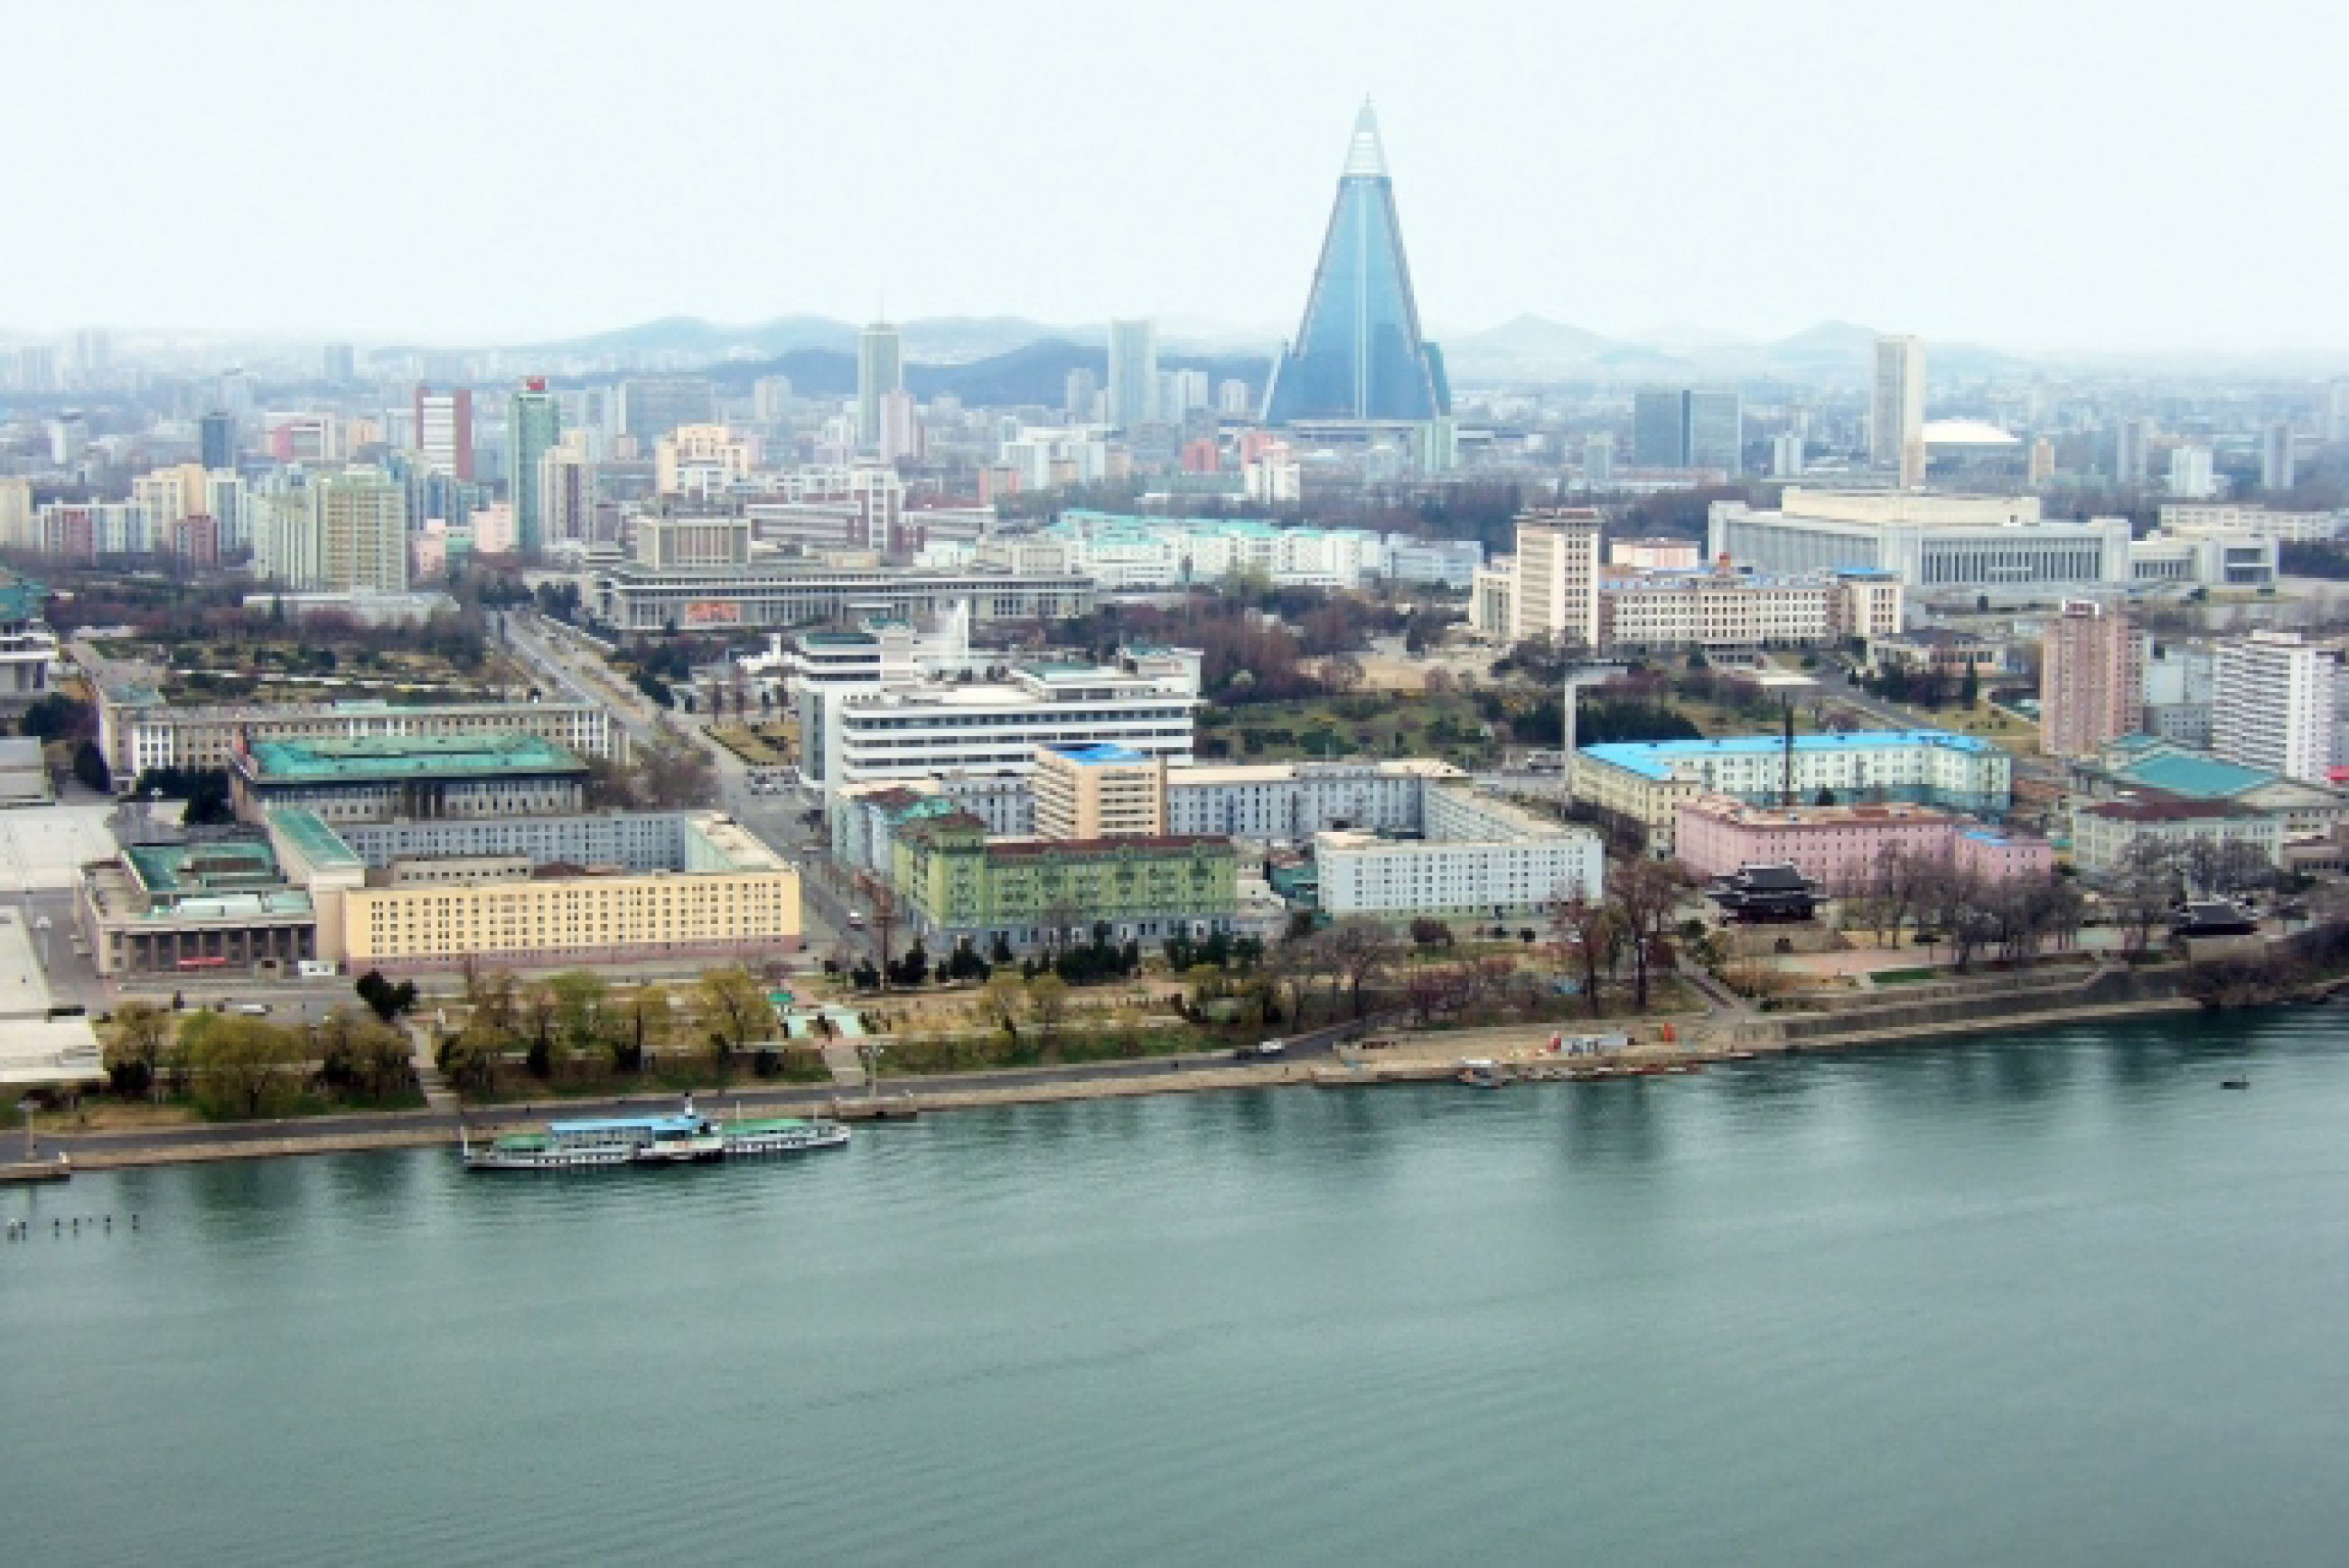 https://bubo.sk/uploads/galleries/7452/view-of-the-pyongyang-capital-of-the-north-korea.jpg